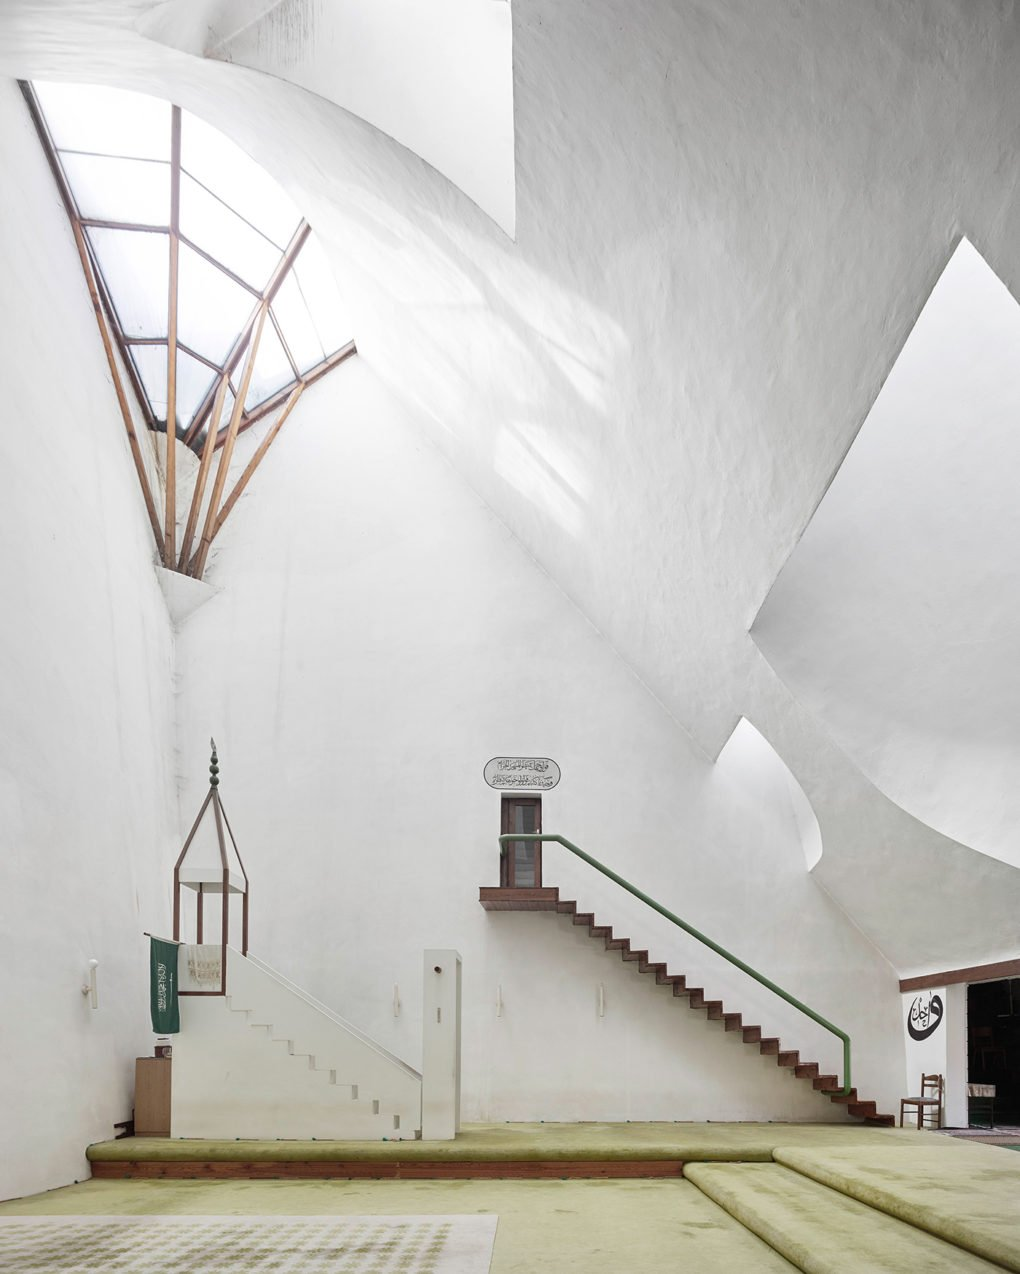 Zlatko Ugljen. Šerefudin White Mosque. 1969–79. Visoko, Bosnia and Herzegovina.